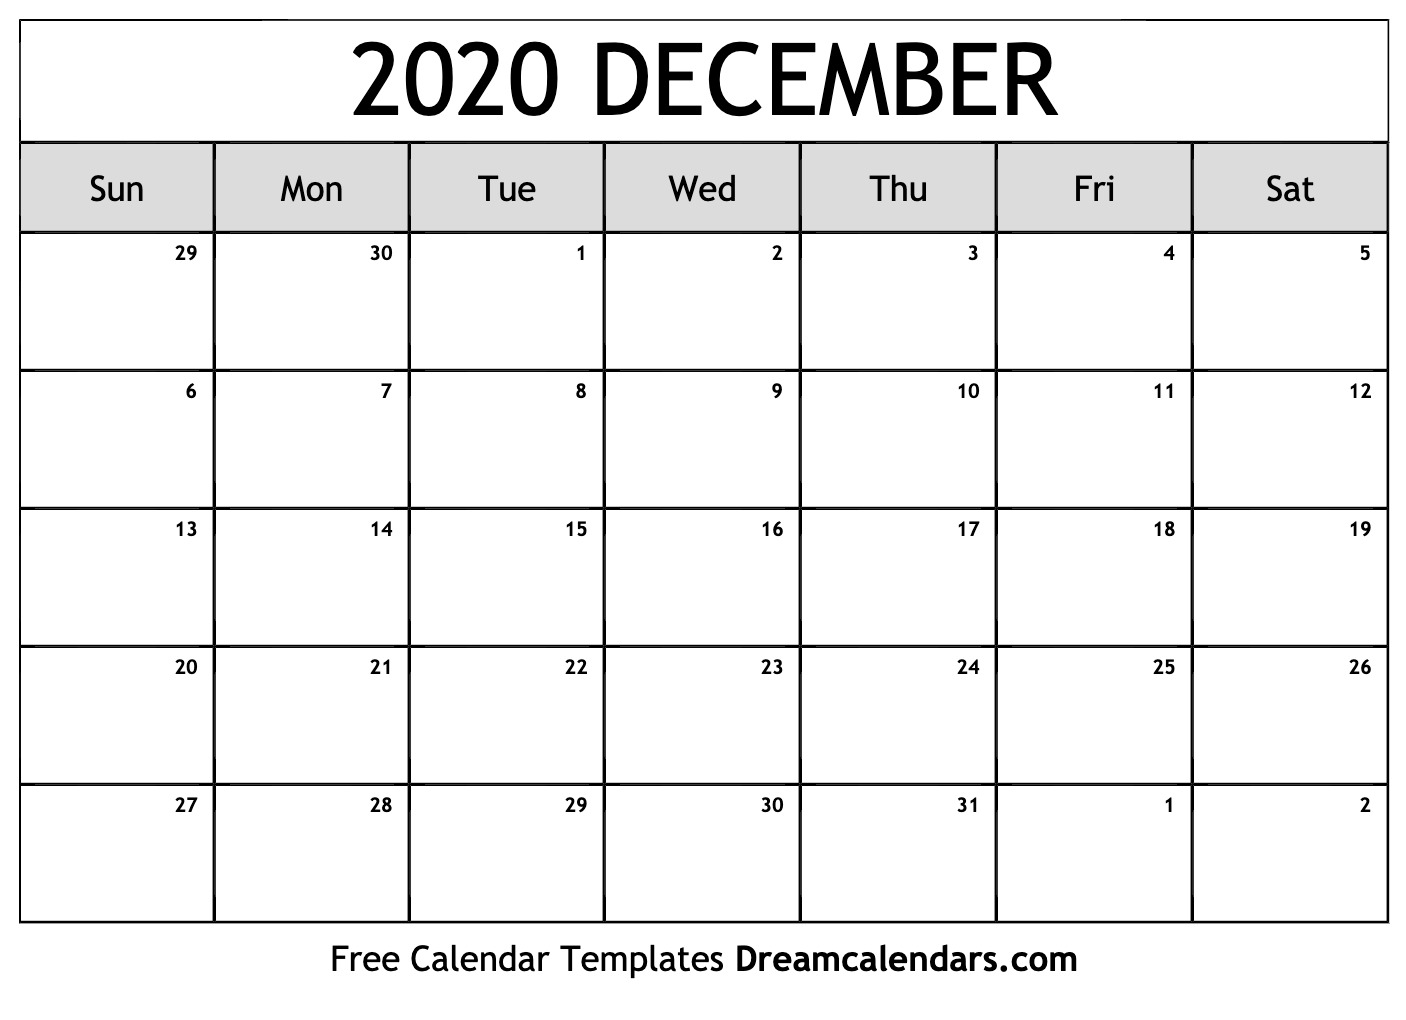 graphic relating to Calendar 2020 Printable titled December 2020 Calendar